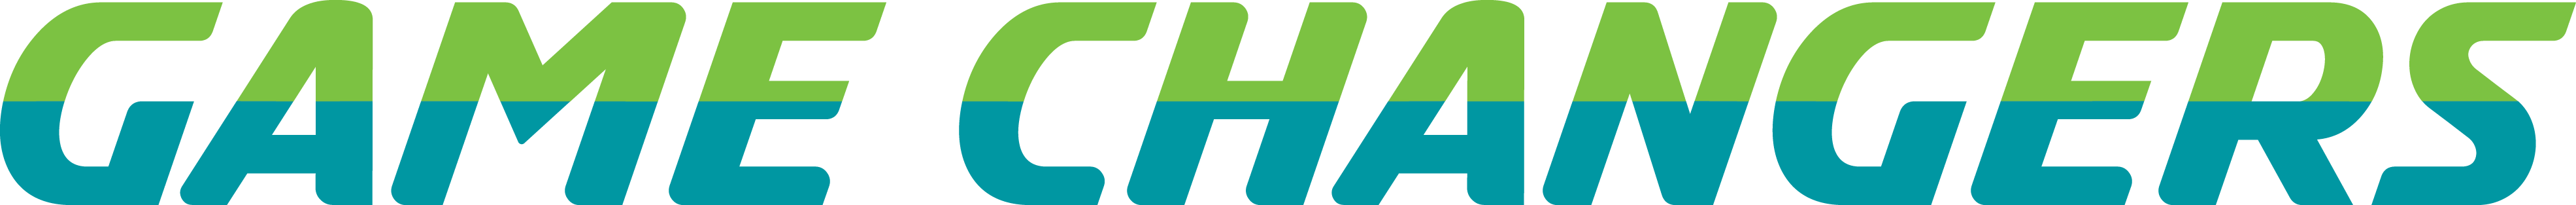 GameChangers_wordmark_(1).png